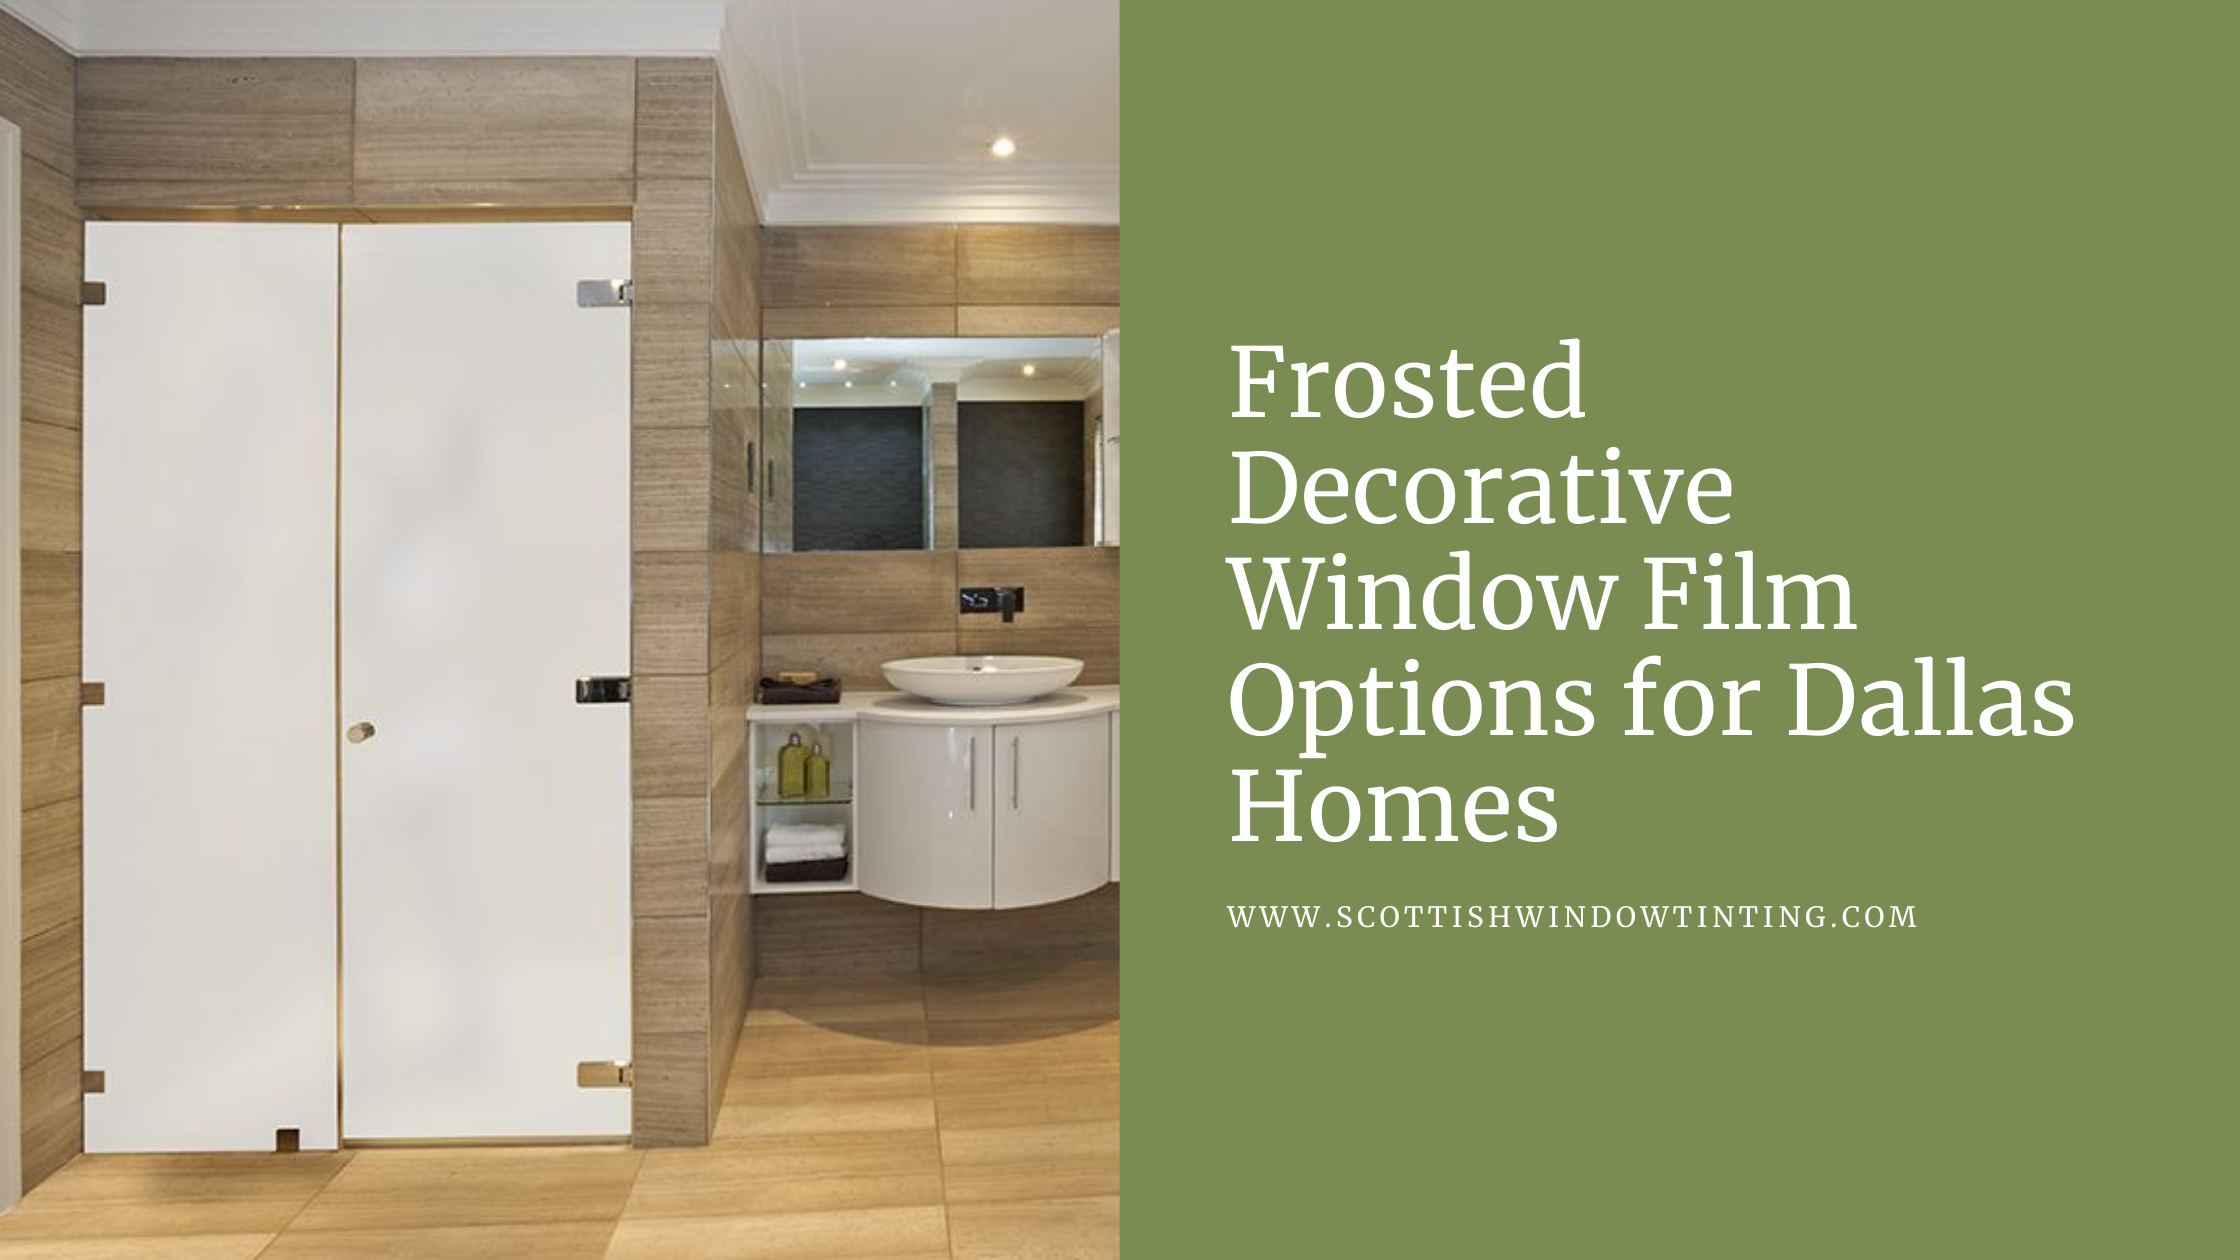 Frosted Decorative Window Film Options for Dallas Homes